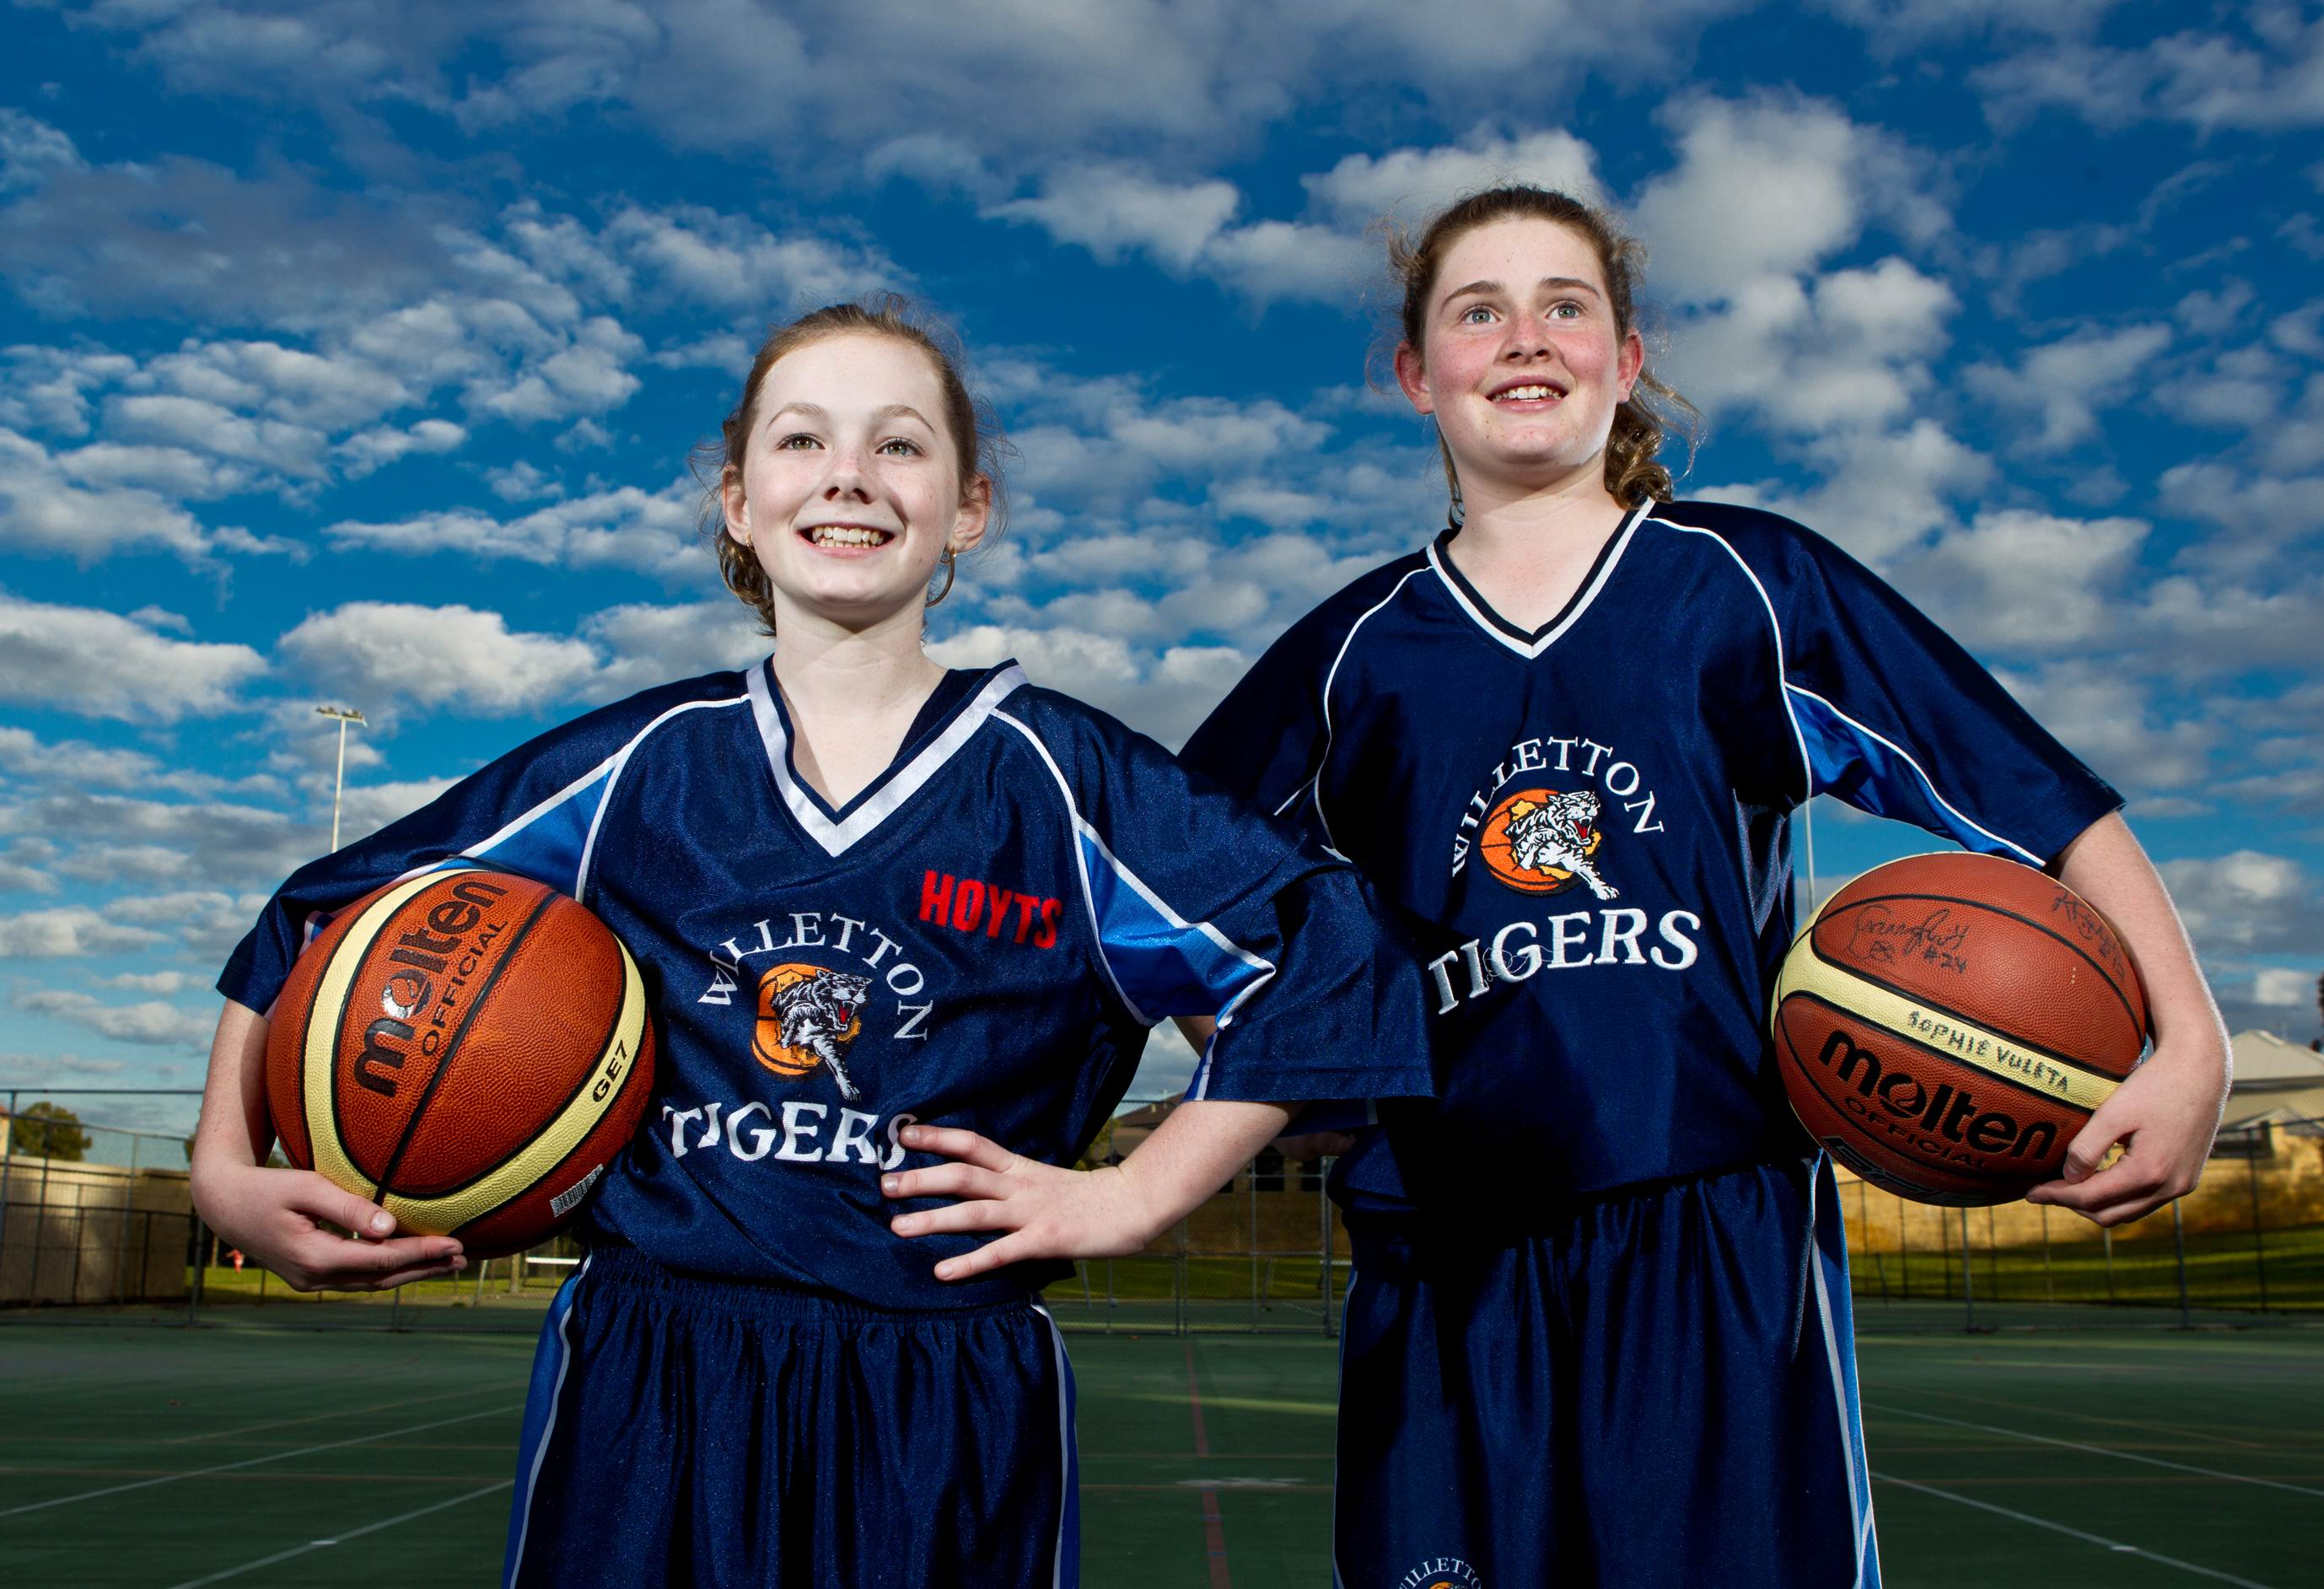 Basketballers Sophie Doran and Sophie Vuleta will represent WA in the National Basketball Championships. Picture: Matthew Poon d402137